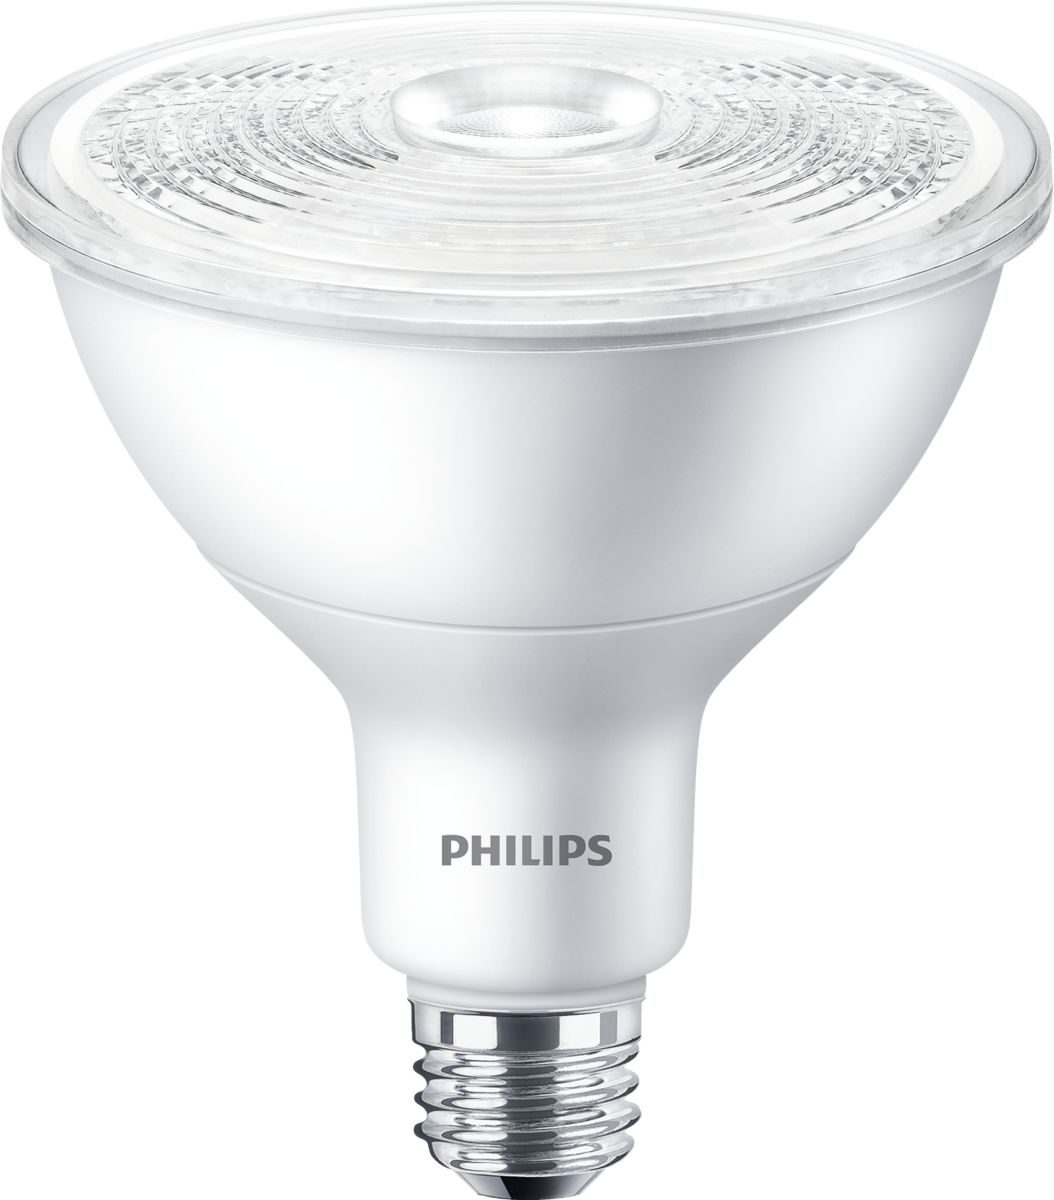 Eclairage Led Philips Philips Outdoor Led Lighting Catalogue Outdoor Lighting